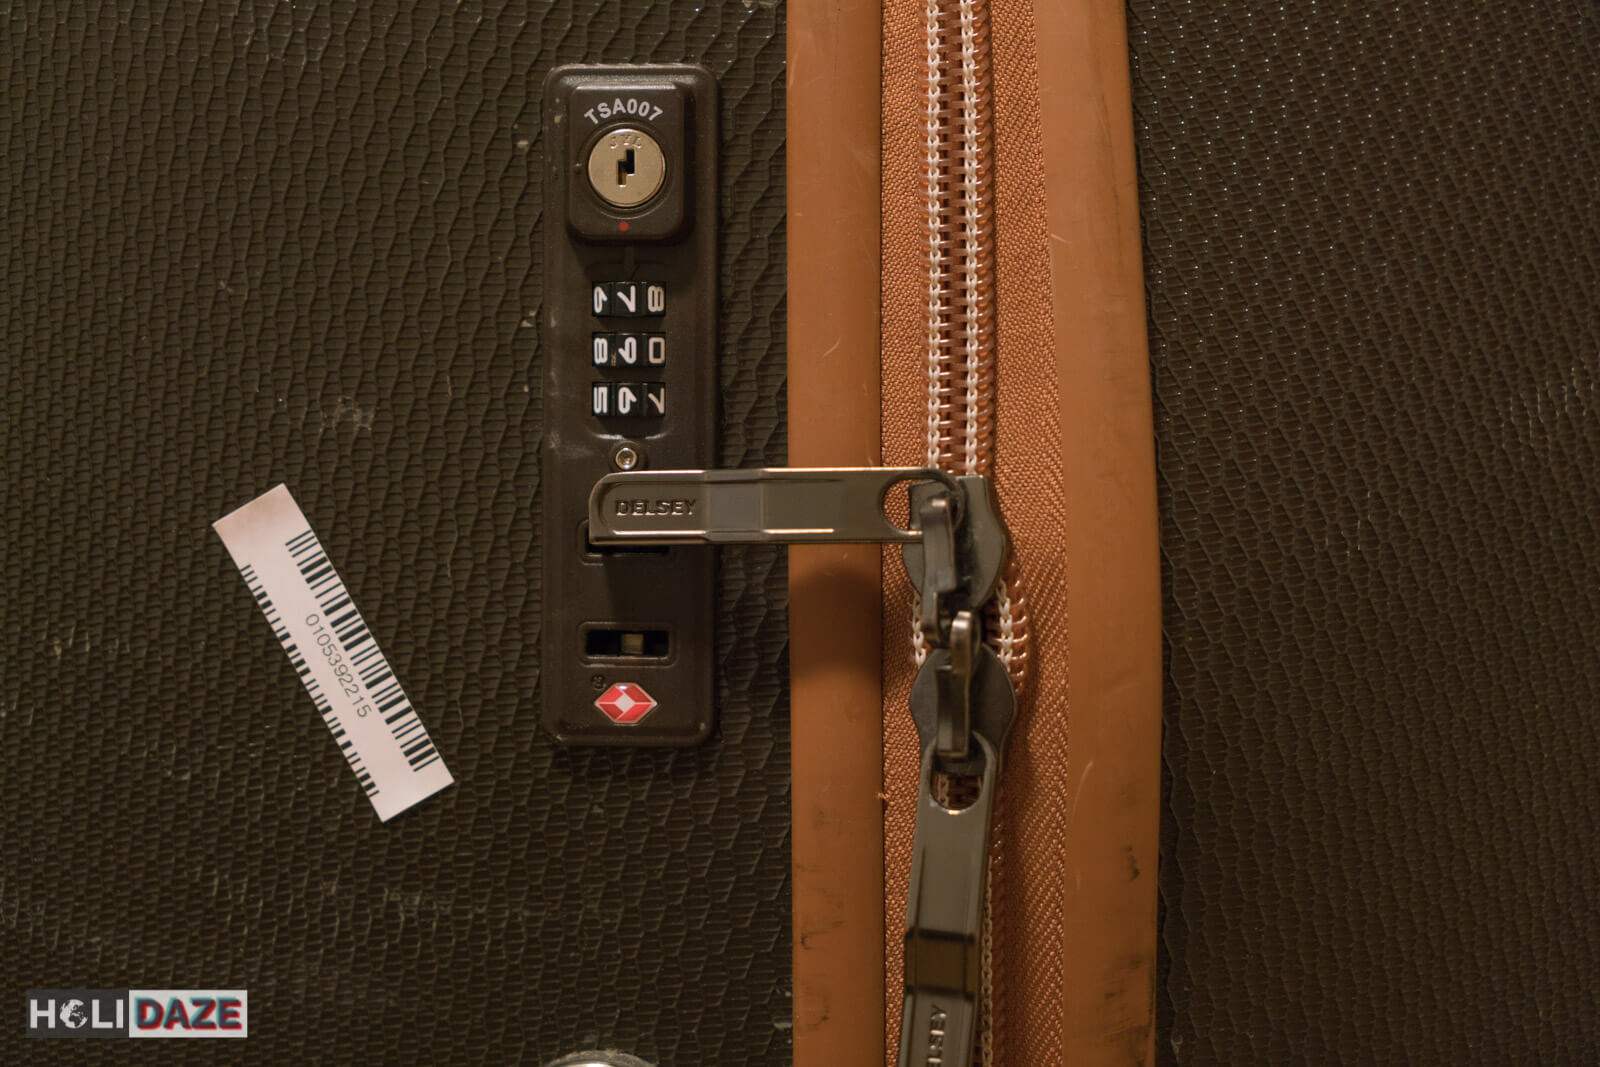 Delsey suitcases are super safe -- as long as you remember to lock it